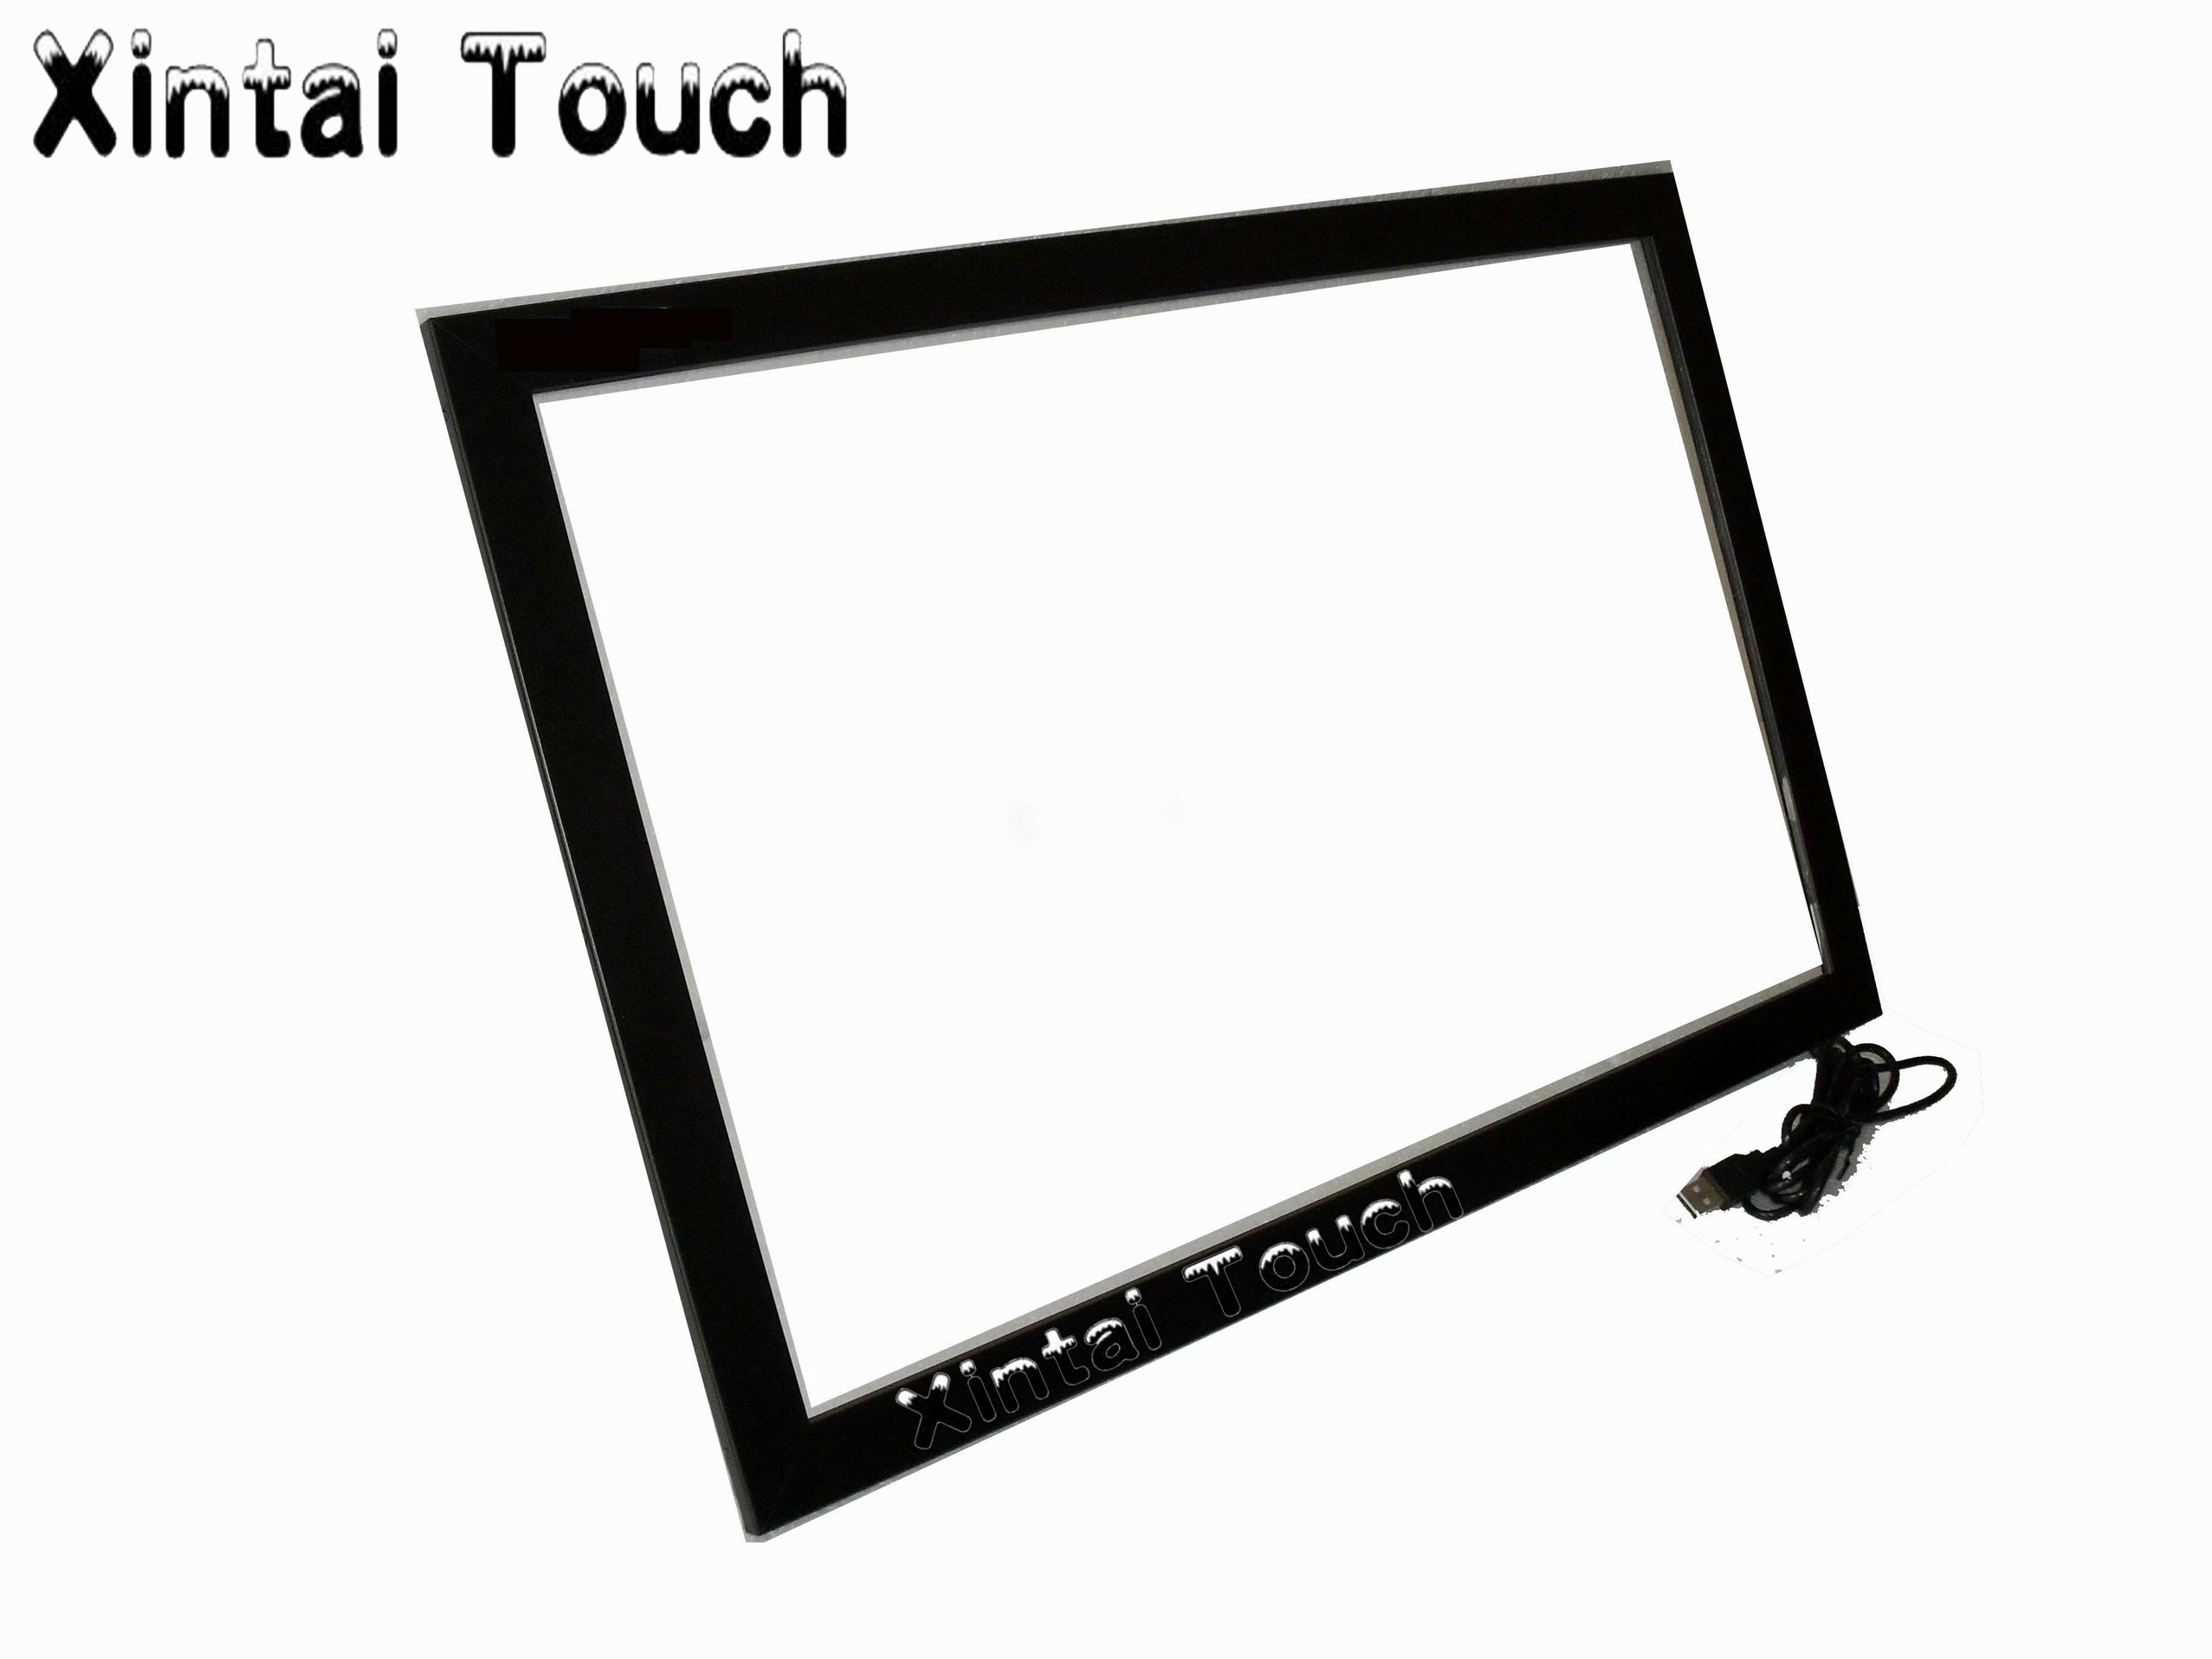 Hot Sale Real 10 Touch Points 50 Infrared IR Multi Touch Screen Fast Shipping BY DHL or FeEX